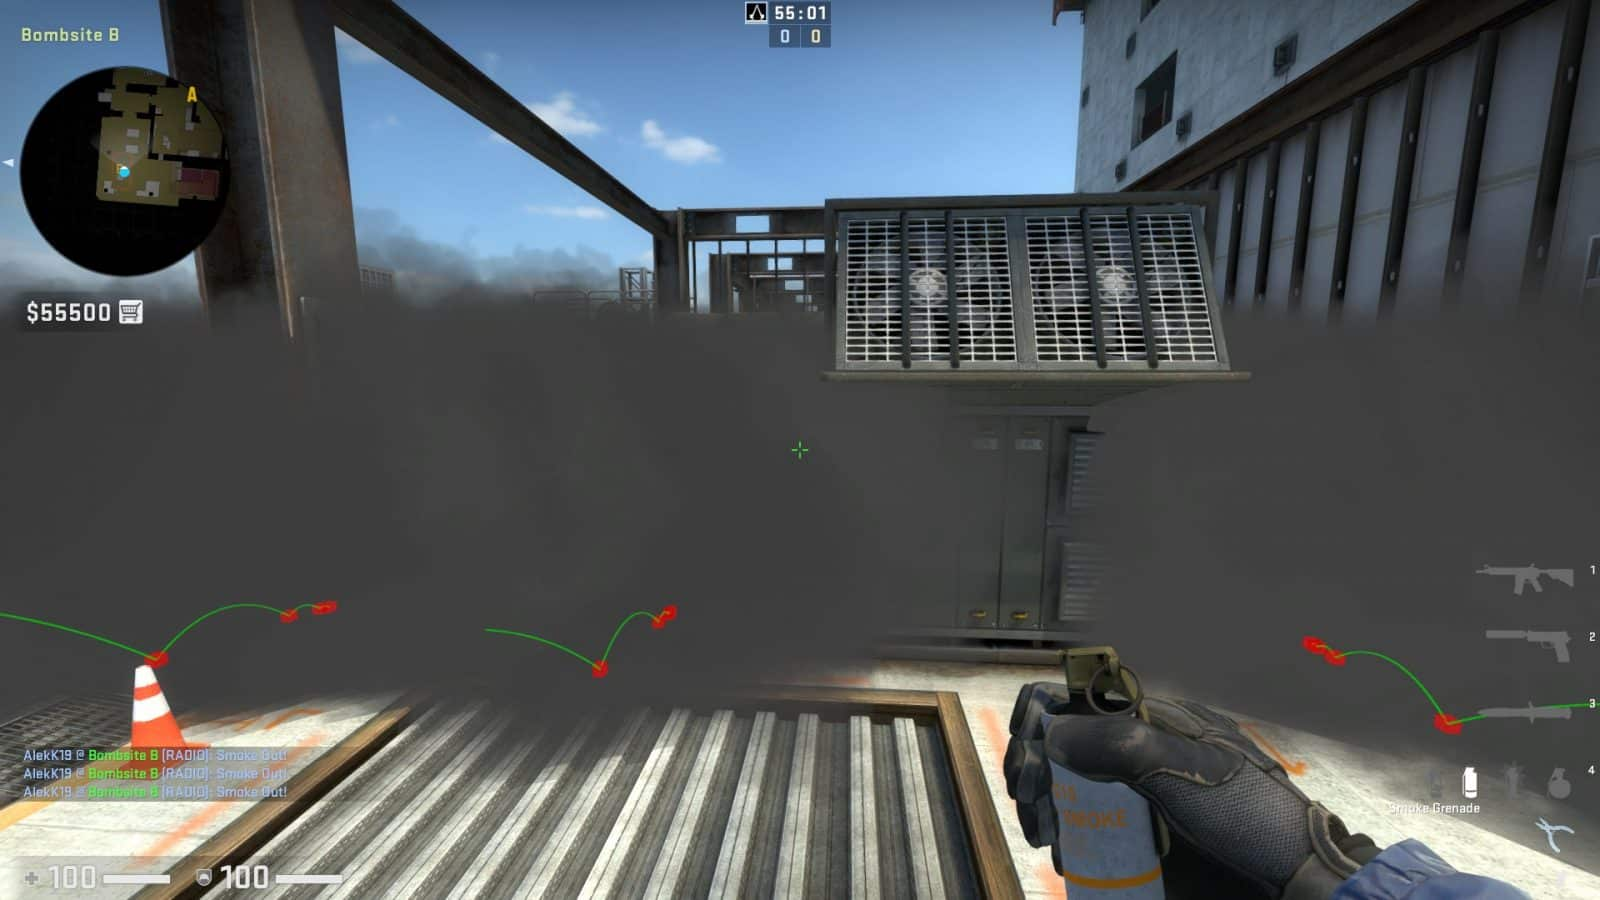 Vertigo is heavily T-sided in CSGO